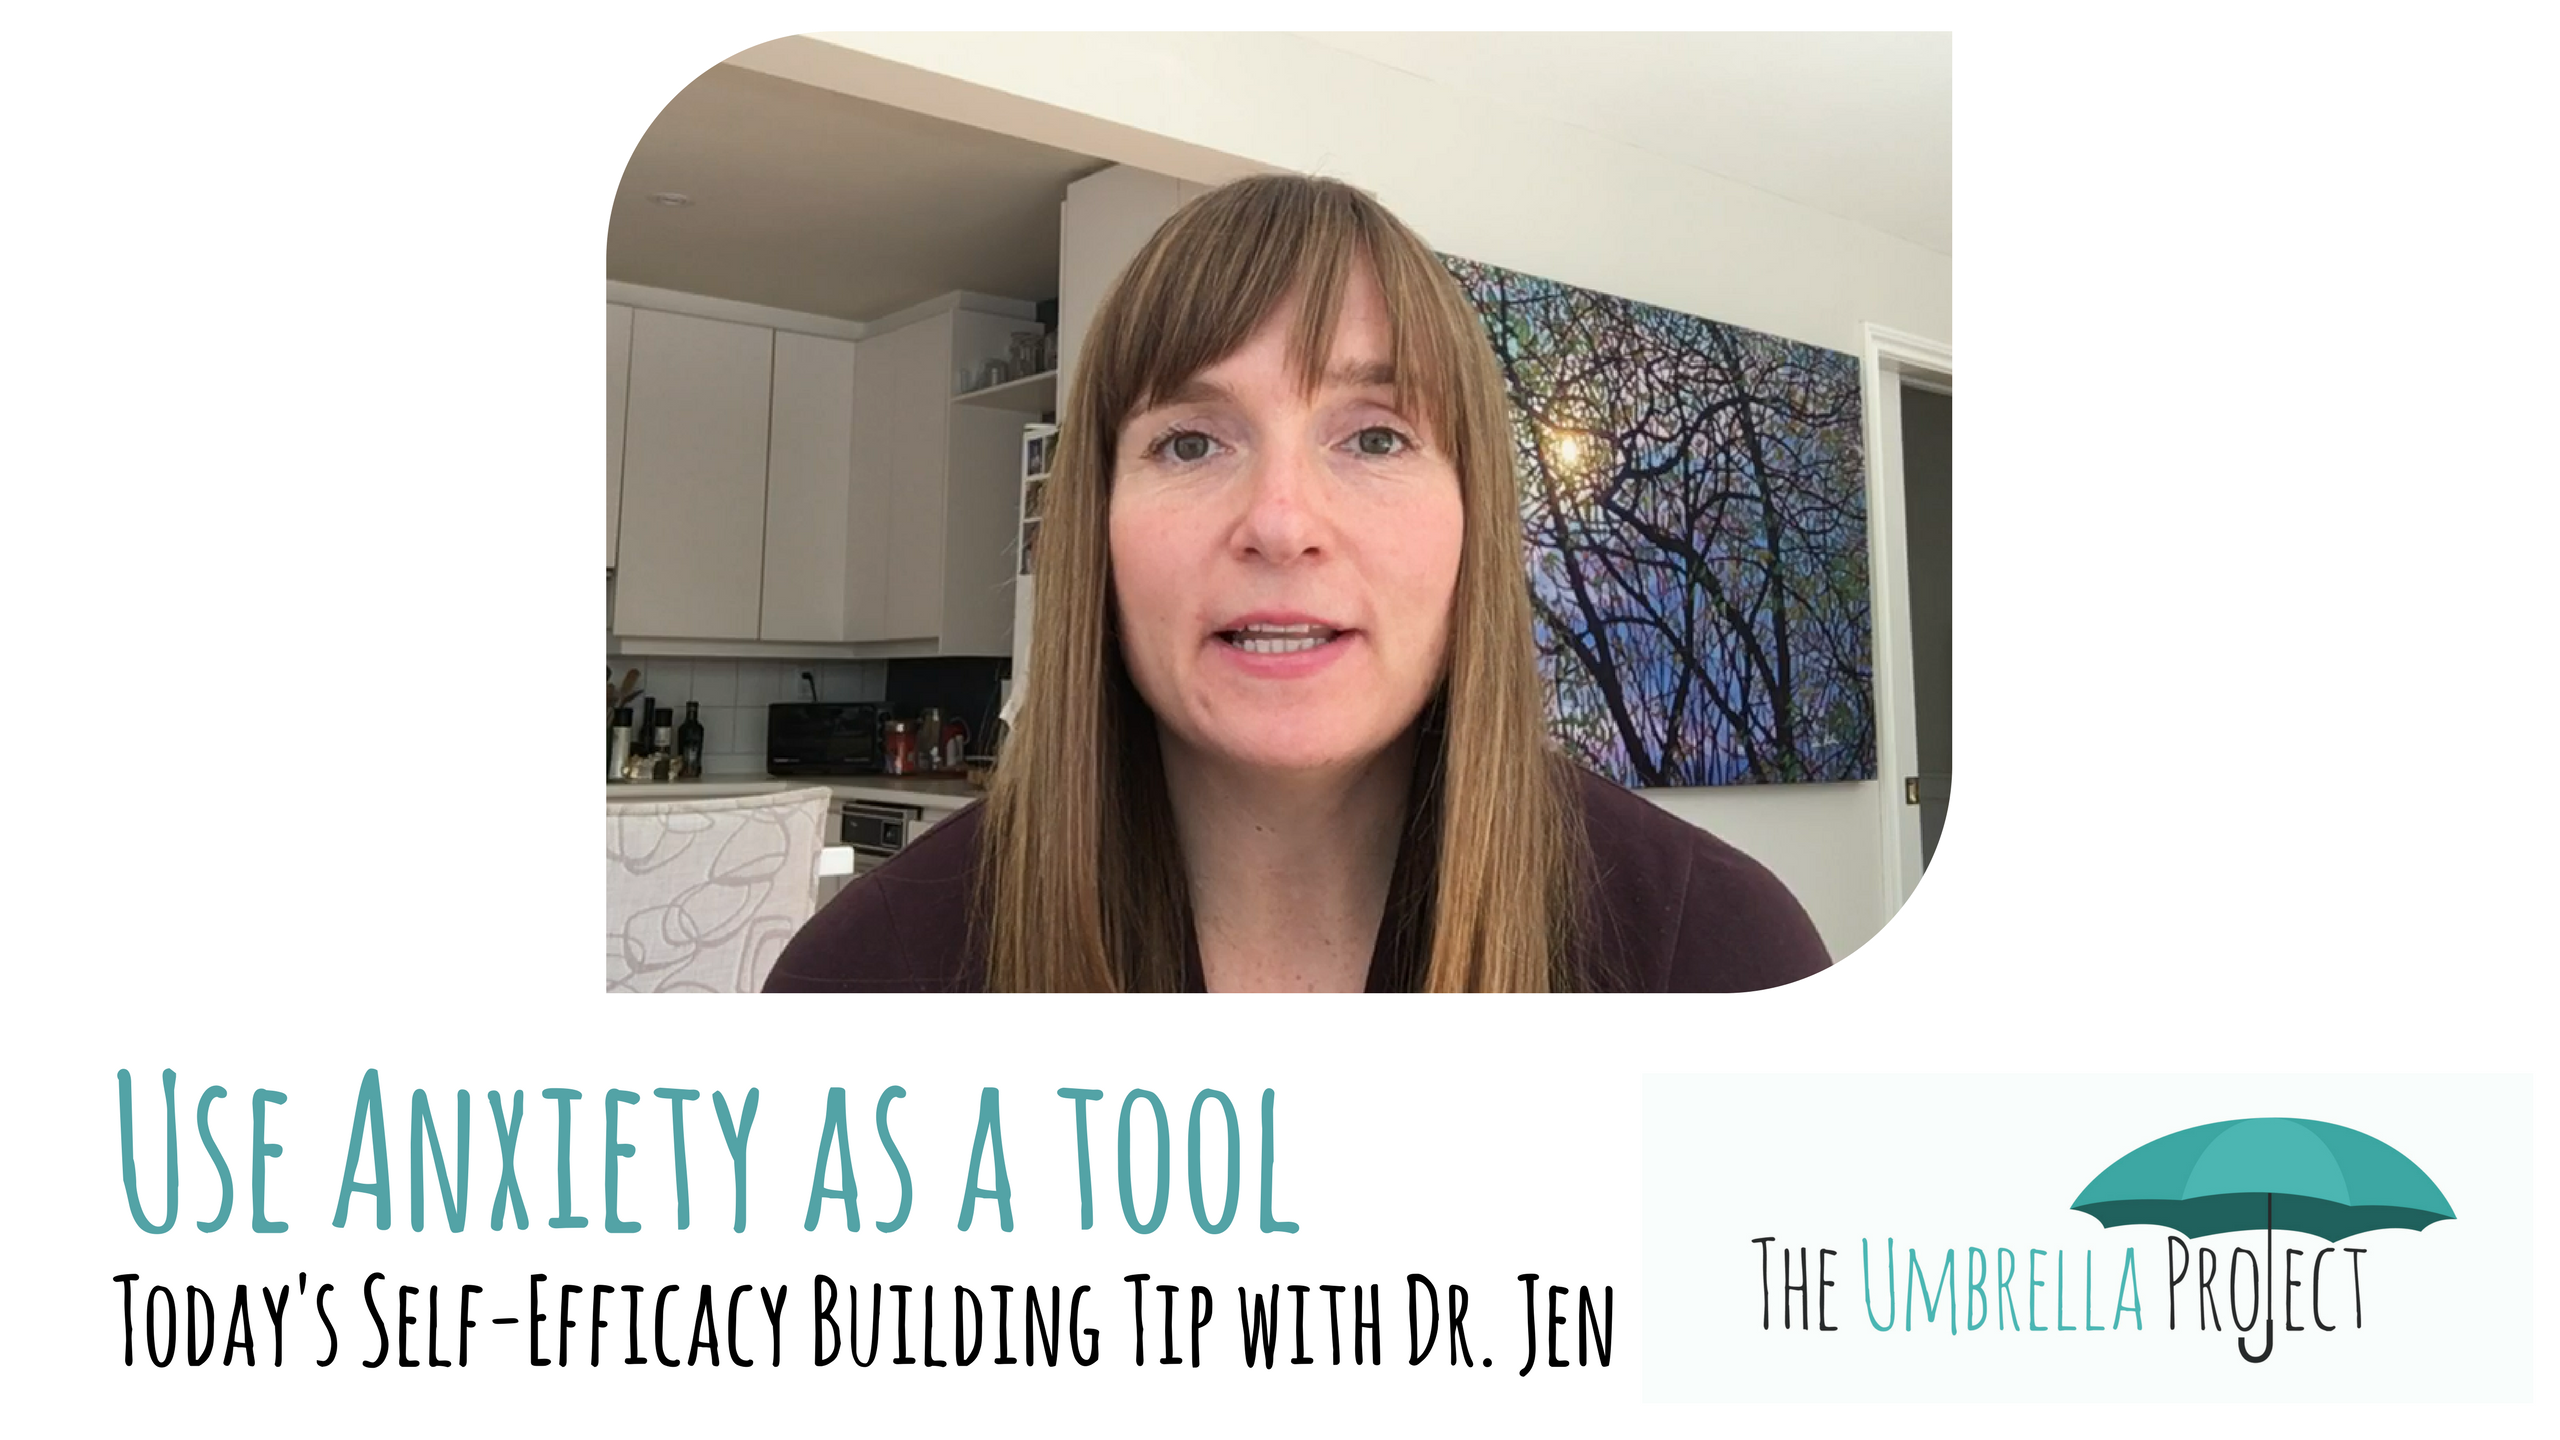 Use Anxiety as a Tool: Today's Self-Efficacy Building Tip with Dr. Jen